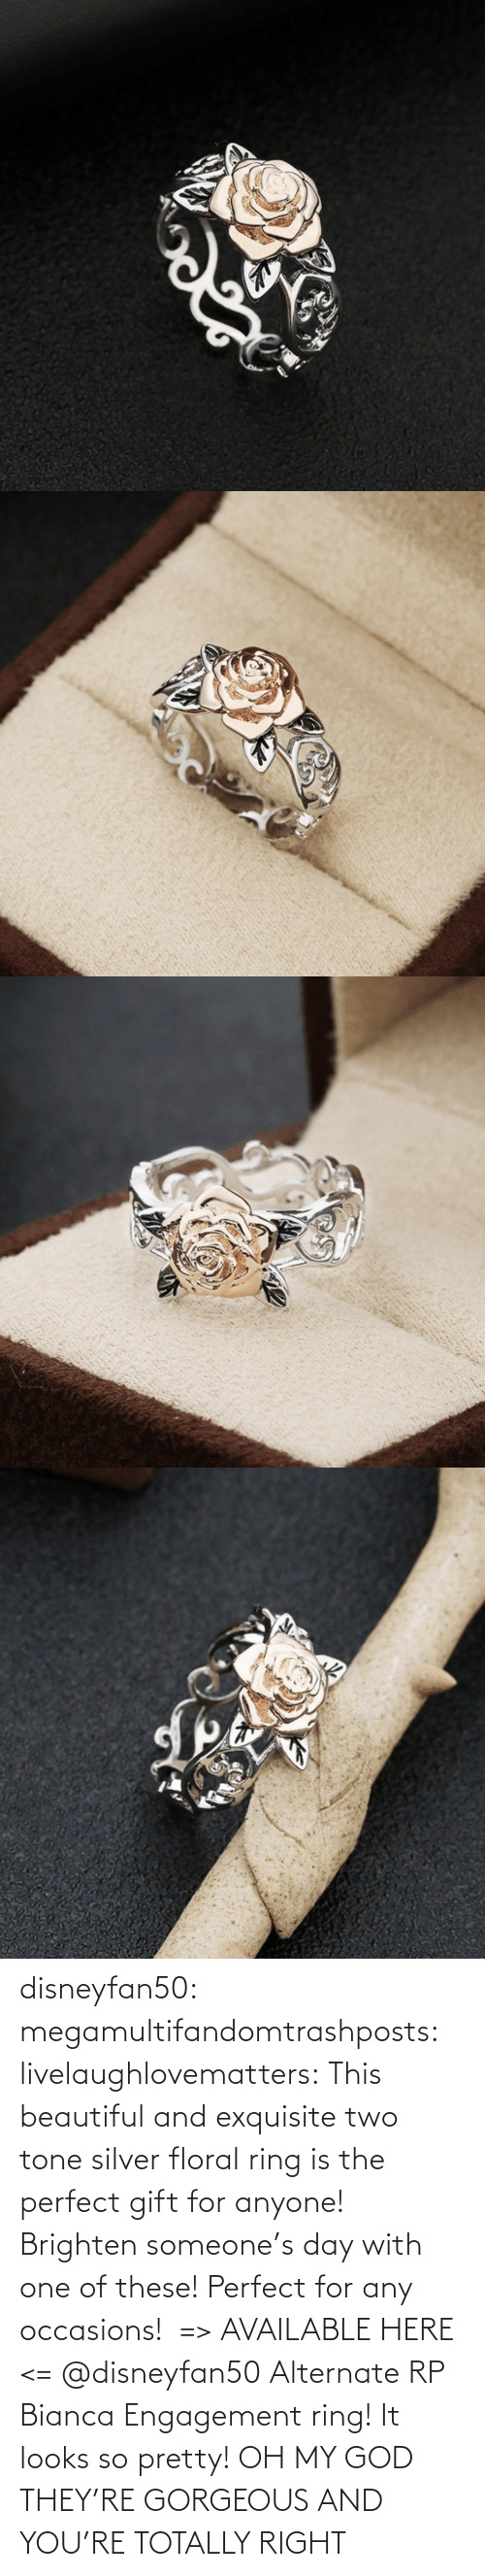 Engagement: disneyfan50: megamultifandomtrashposts:  livelaughlovematters:  This beautiful and exquisite two tone silver floral ring is the perfect gift for anyone! Brighten someone's day with one of these! Perfect for any occasions!  => AVAILABLE HERE <=    @disneyfan50 Alternate RP Bianca Engagement ring! It looks so pretty!  OH MY GOD THEY'RE GORGEOUS AND YOU'RE TOTALLY RIGHT